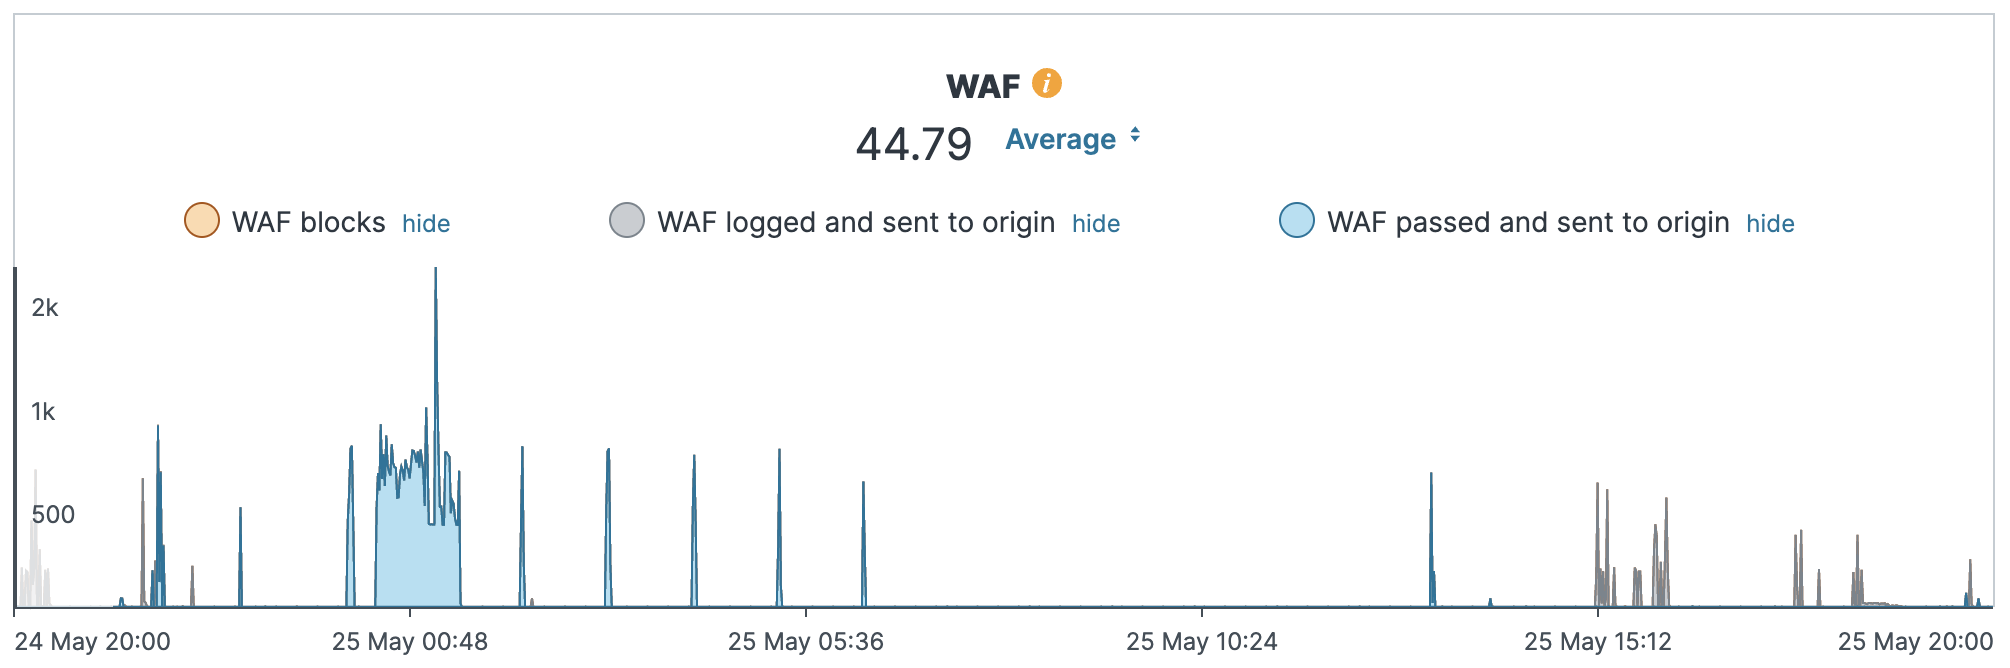 About the Fastly WAF dashboard | Fastly Help Guides